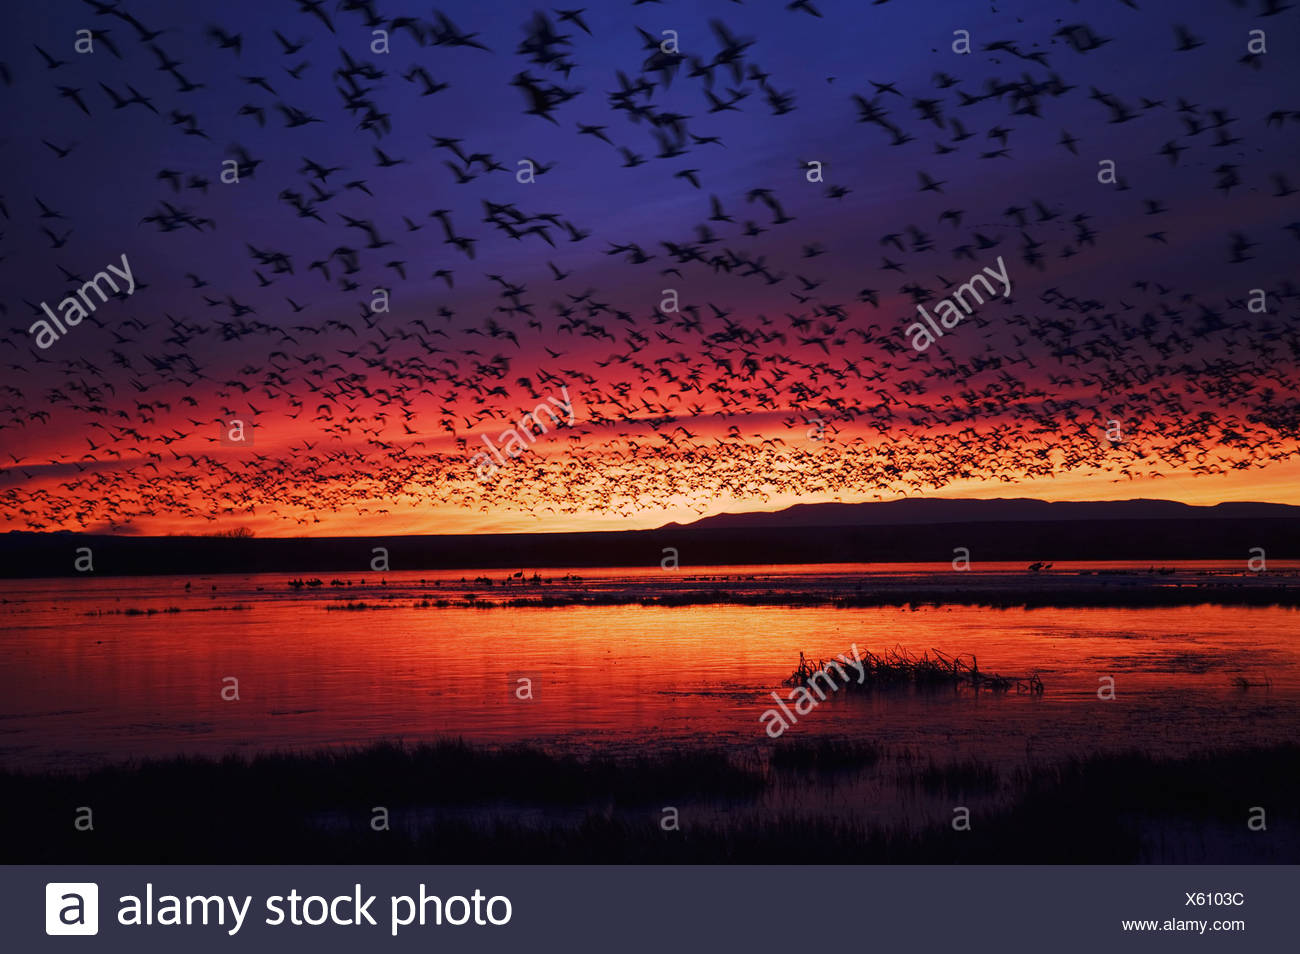 Snow Goose Chen caerulescens flock lifting off at sunrise Bosque del Apache National Wildlife Refuge New Mexico USA - Stock Image